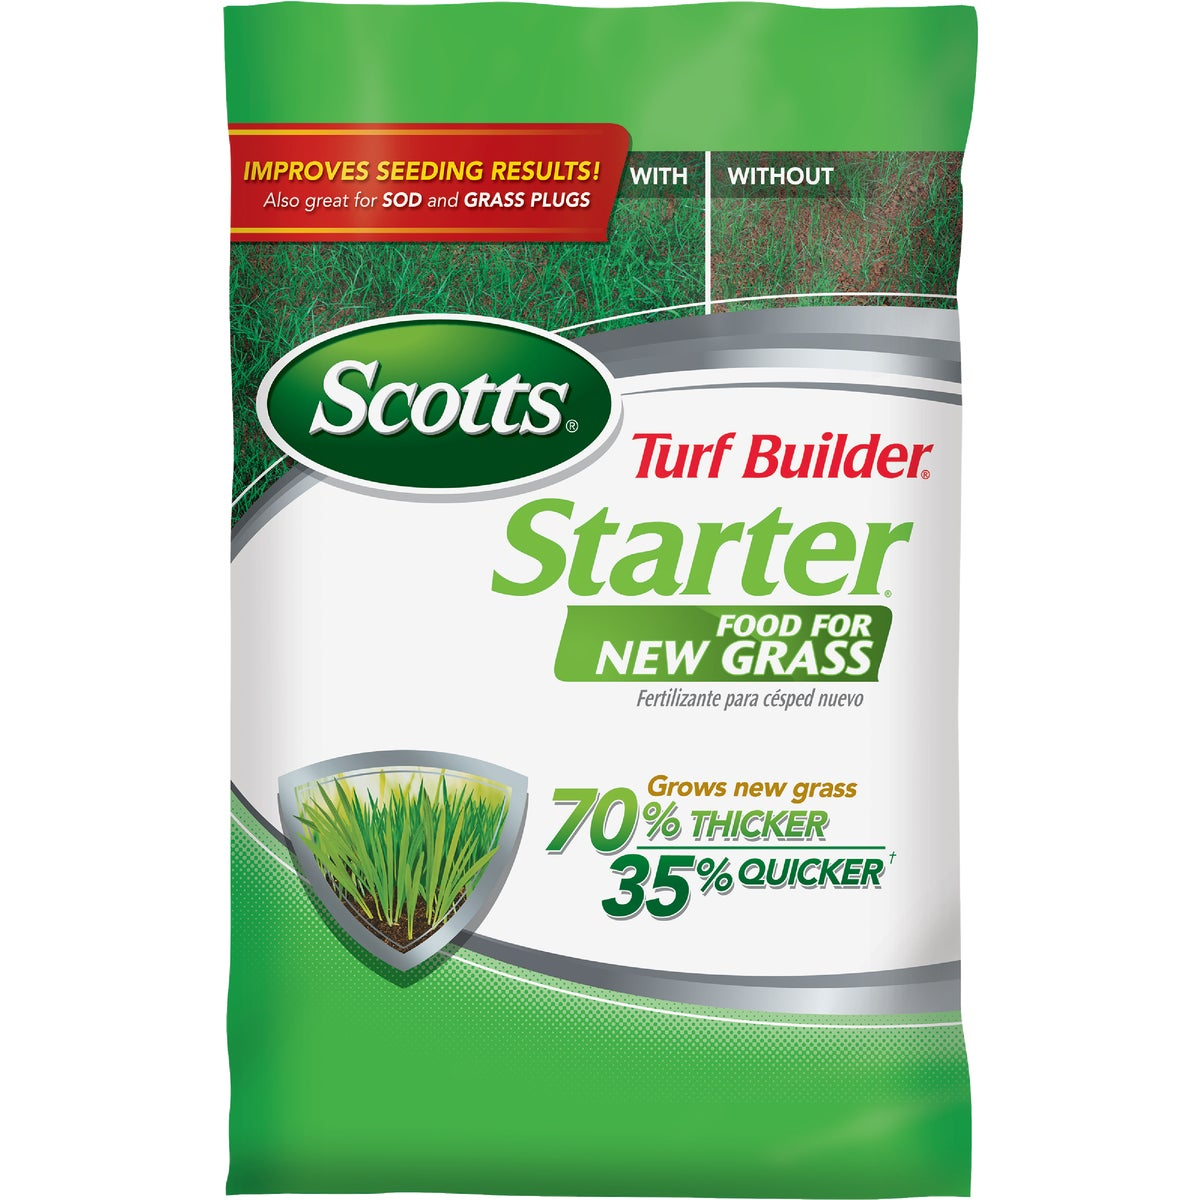 1M TB STARTER FERTILIZER